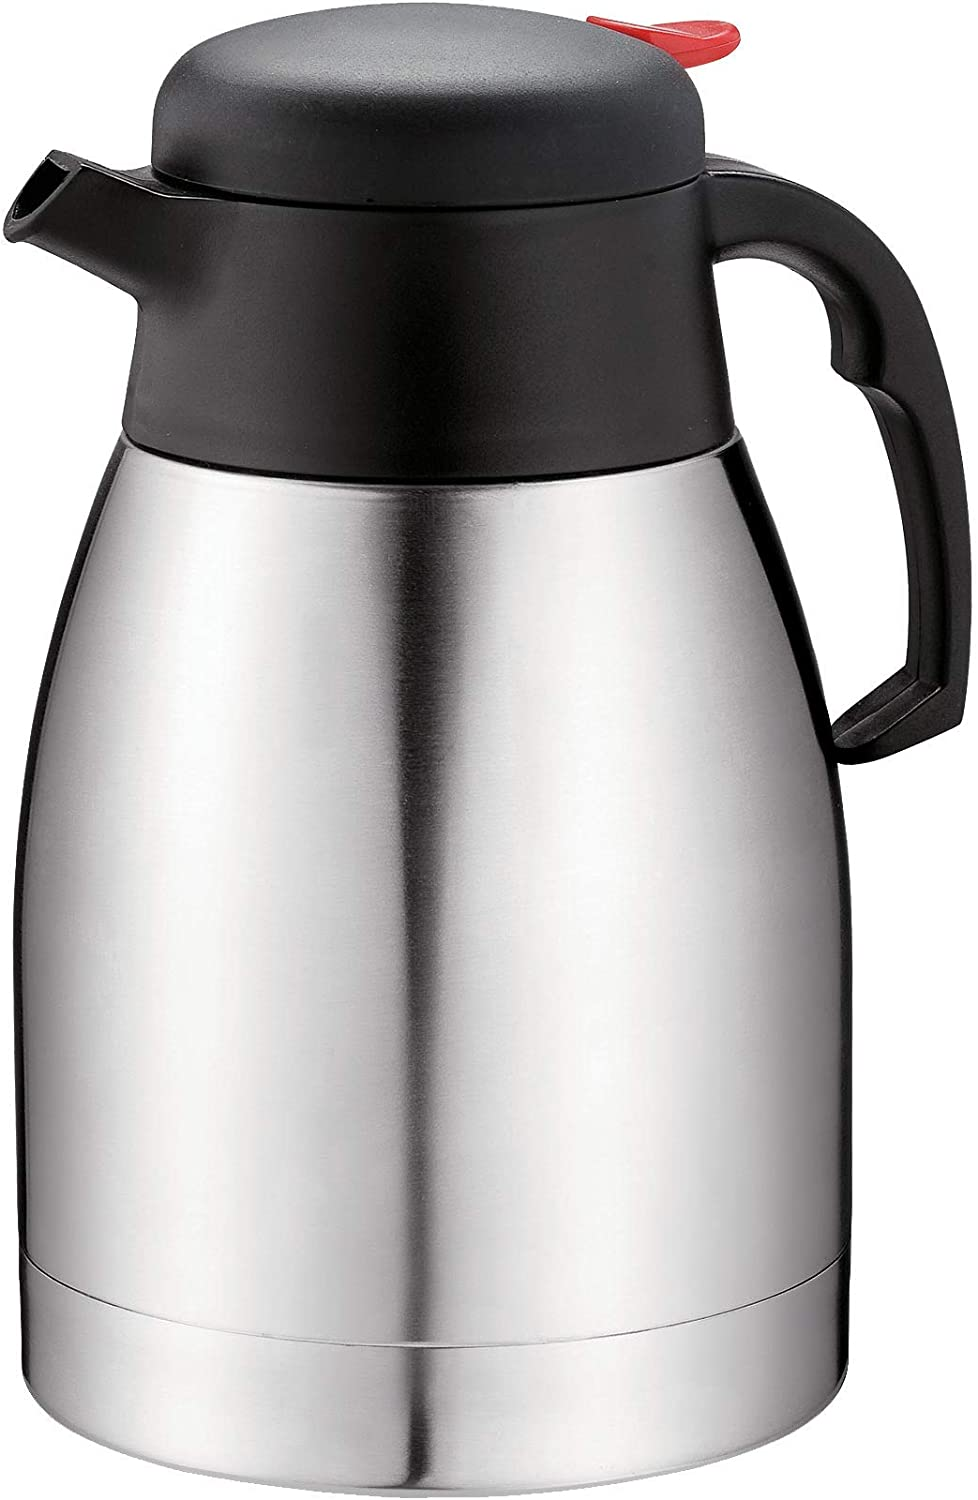 Ricovero Premium Double Wall vacuum sealed insulated Thermal Jug/ideal for Coffee, Tea, Milk with 1.2 Liters (41 fl. Oz) Capacity keeps liquids hot or cold